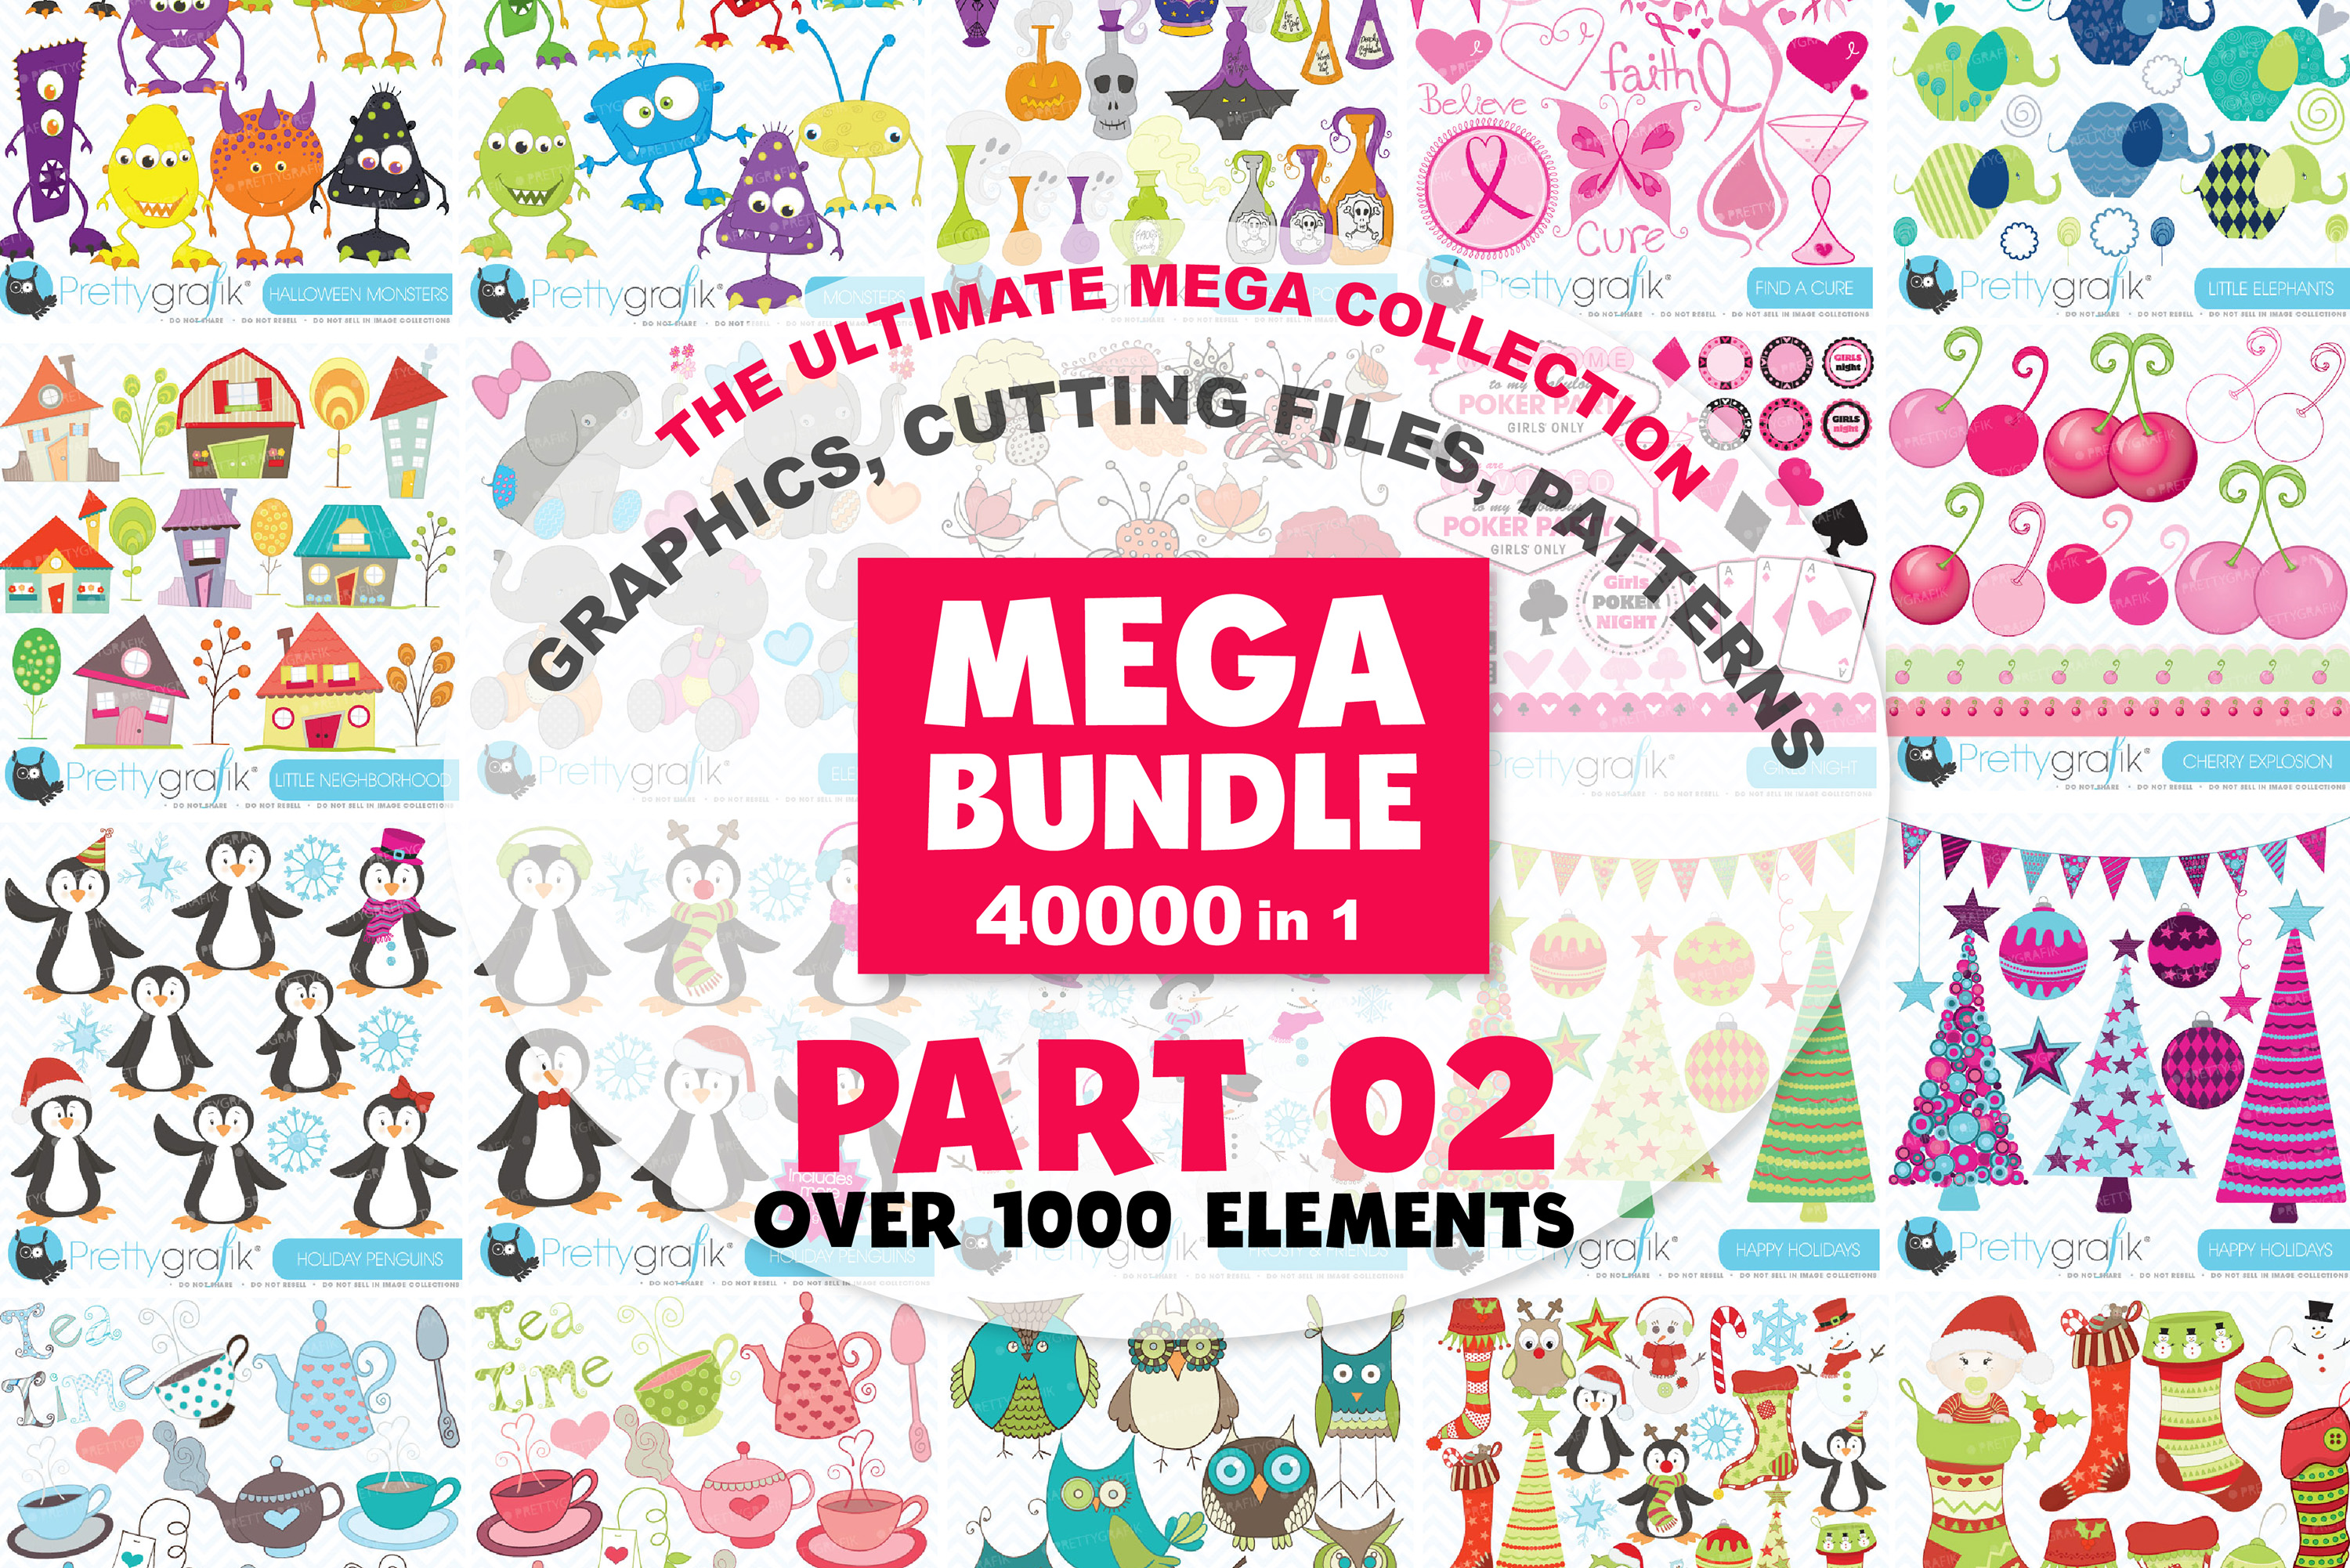 MEGA BUNDLE PART02 - 40000 in 1 Full Collection example image 1